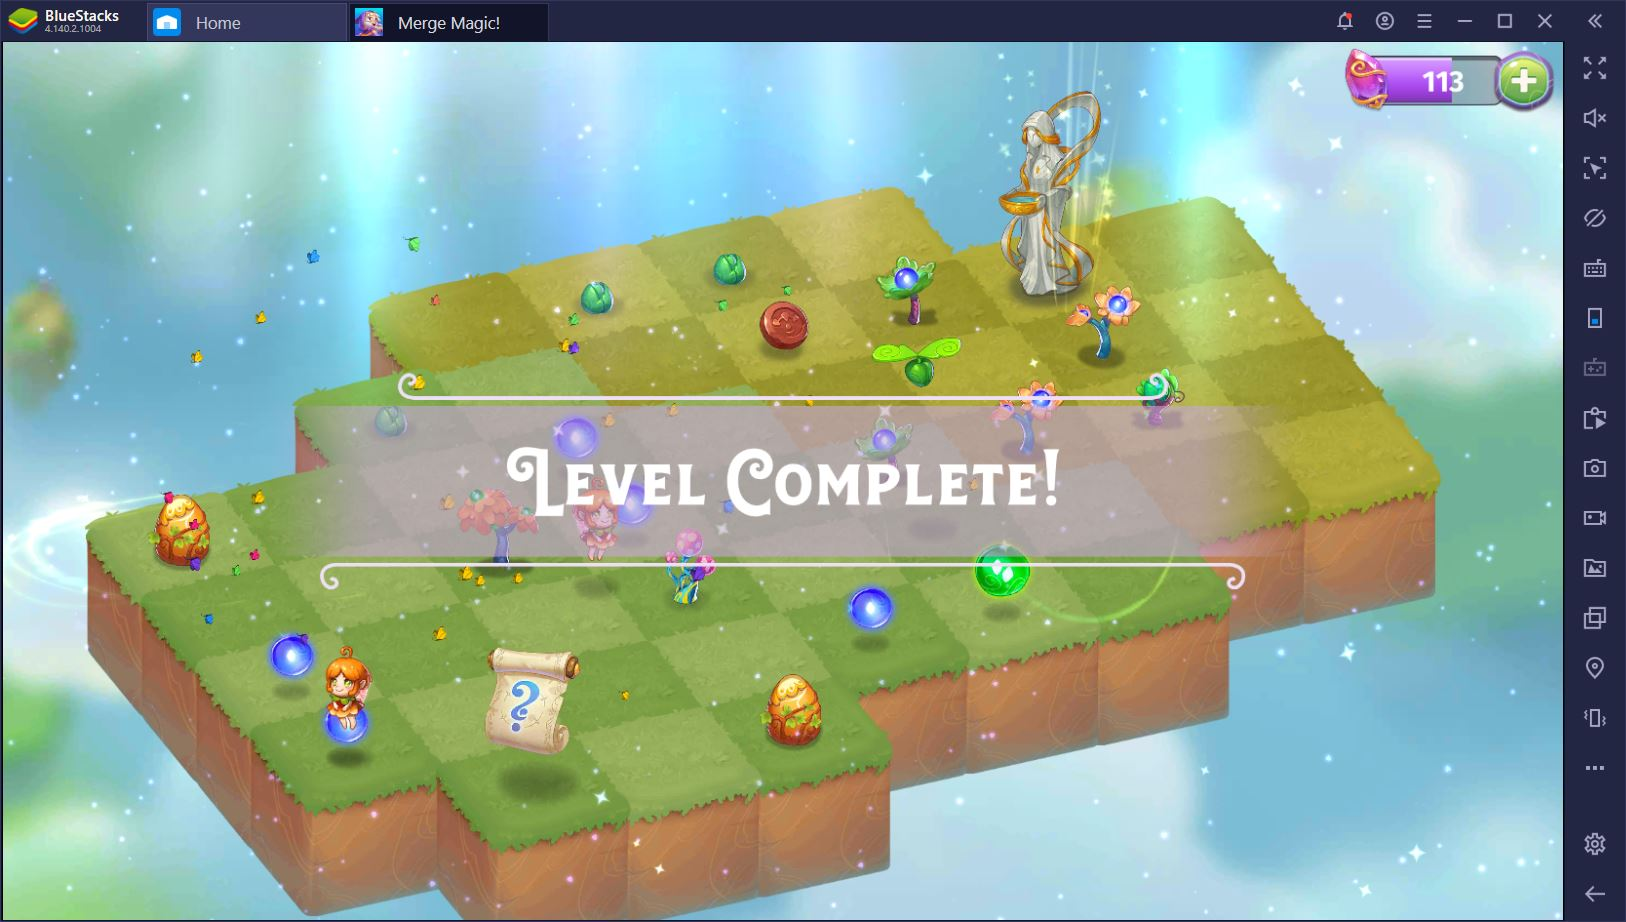 How to Play Merge Magic! on PC with BlueStacks